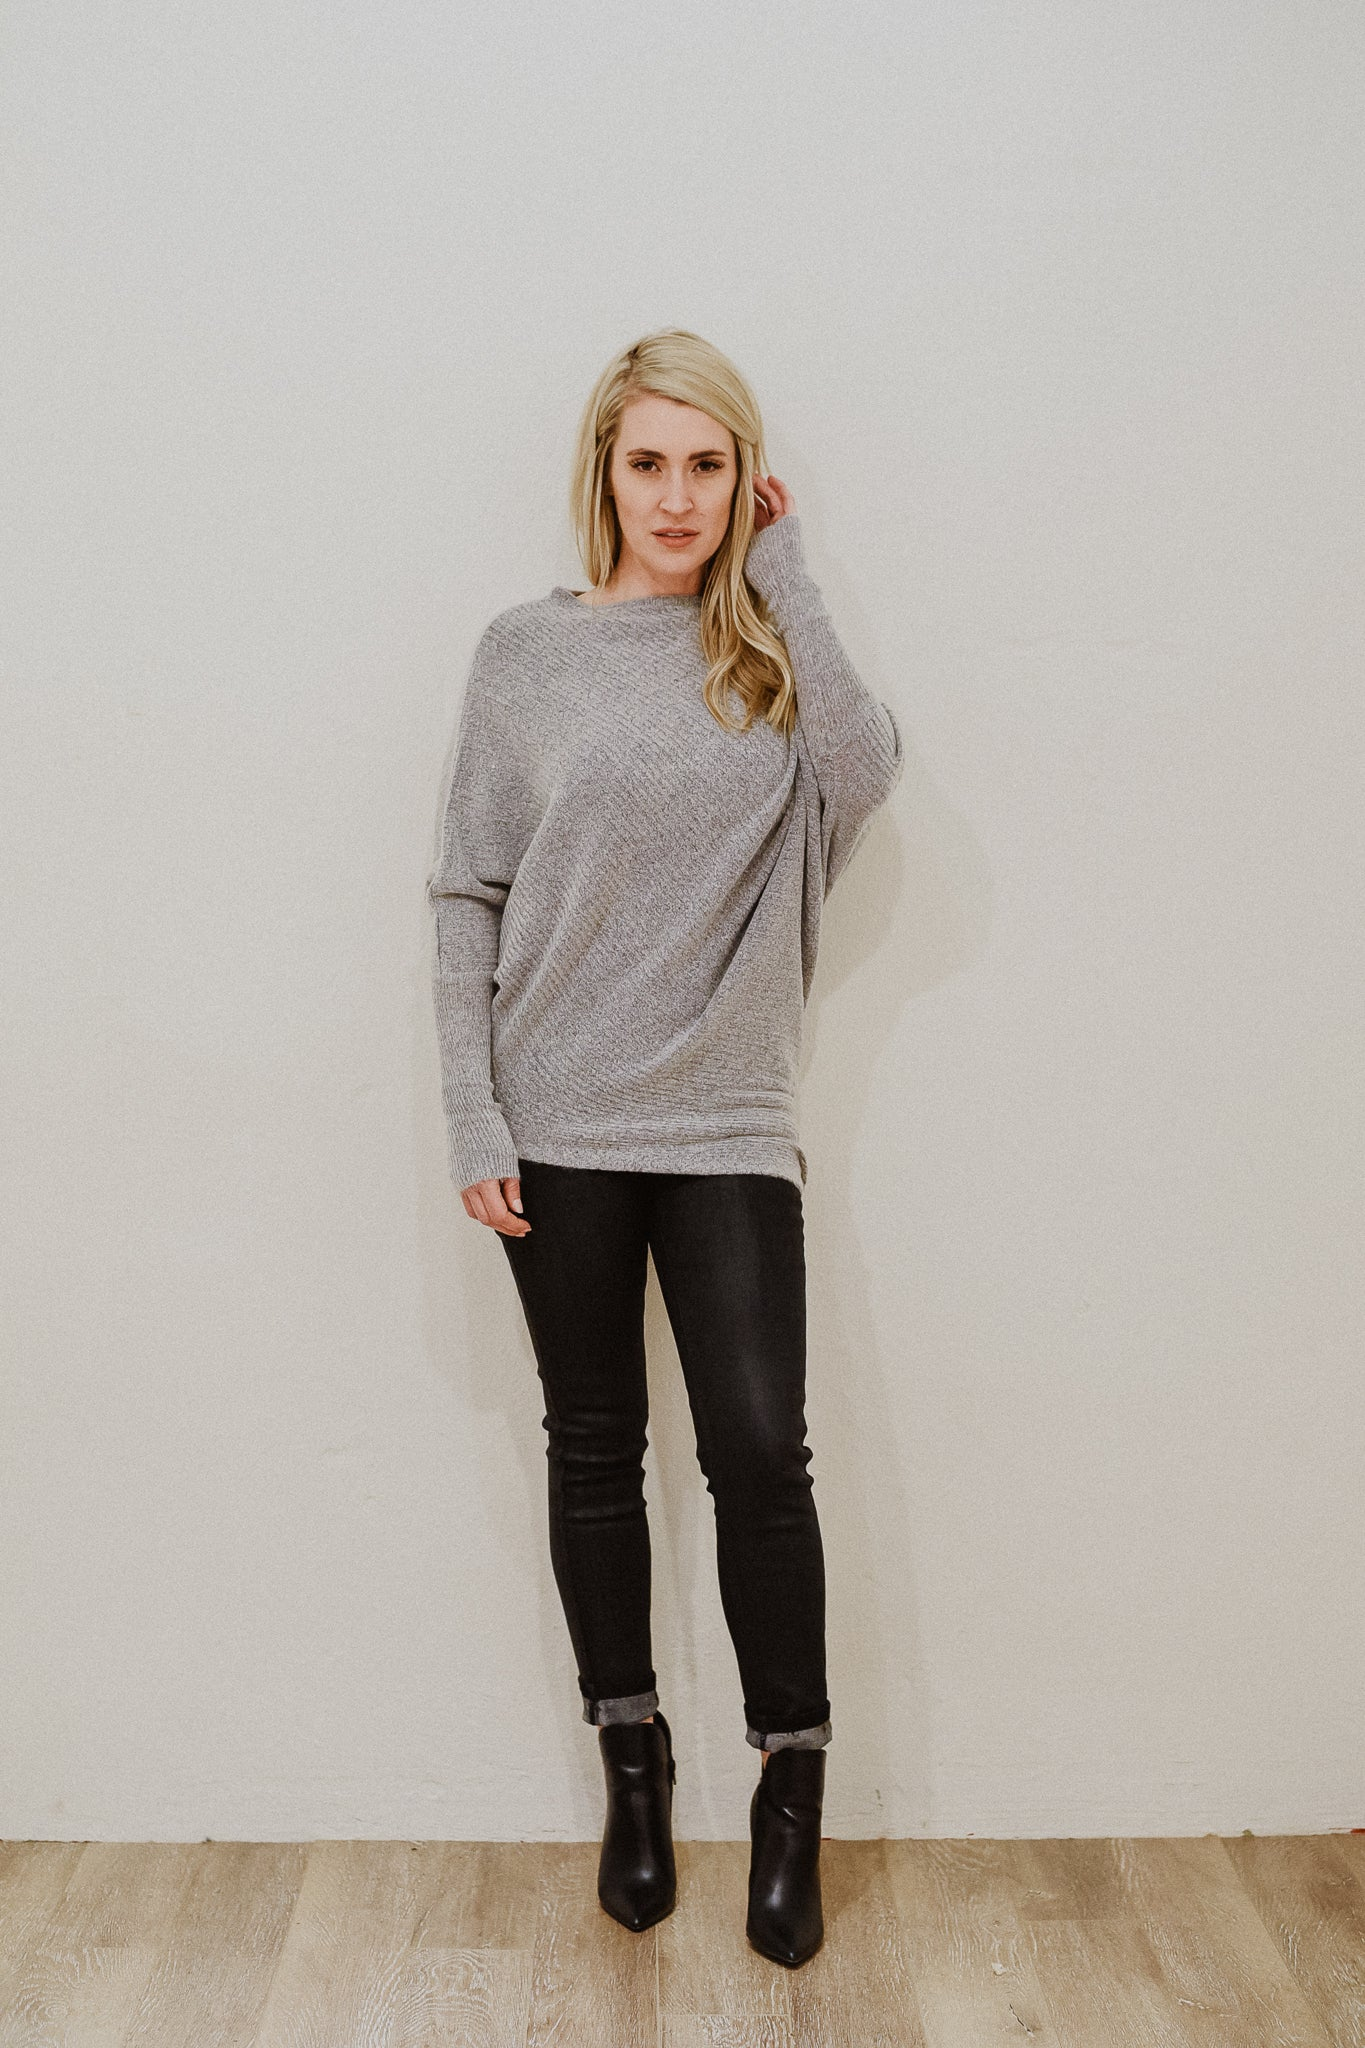 Say Something Sweet Asymmetrical Sweater Dress in Heather Grey / FINAL SALE